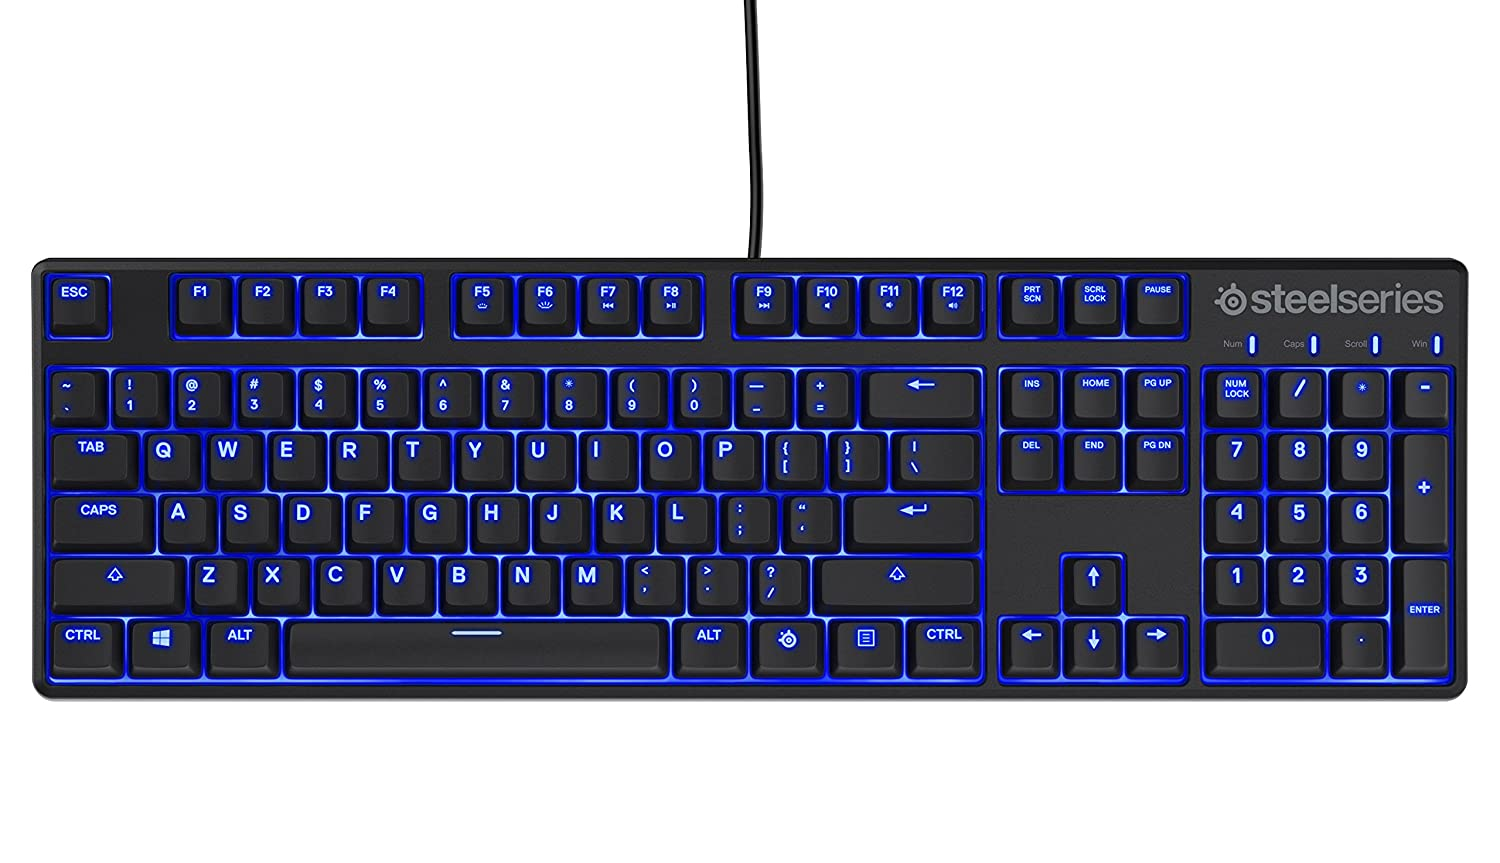 Amazon mechanical keyboard - Amazon Com Steelseries Apex M500 Mechanical Gaming Keyboard Cherry Mx Red Blue Led Backlit Computers Accessories